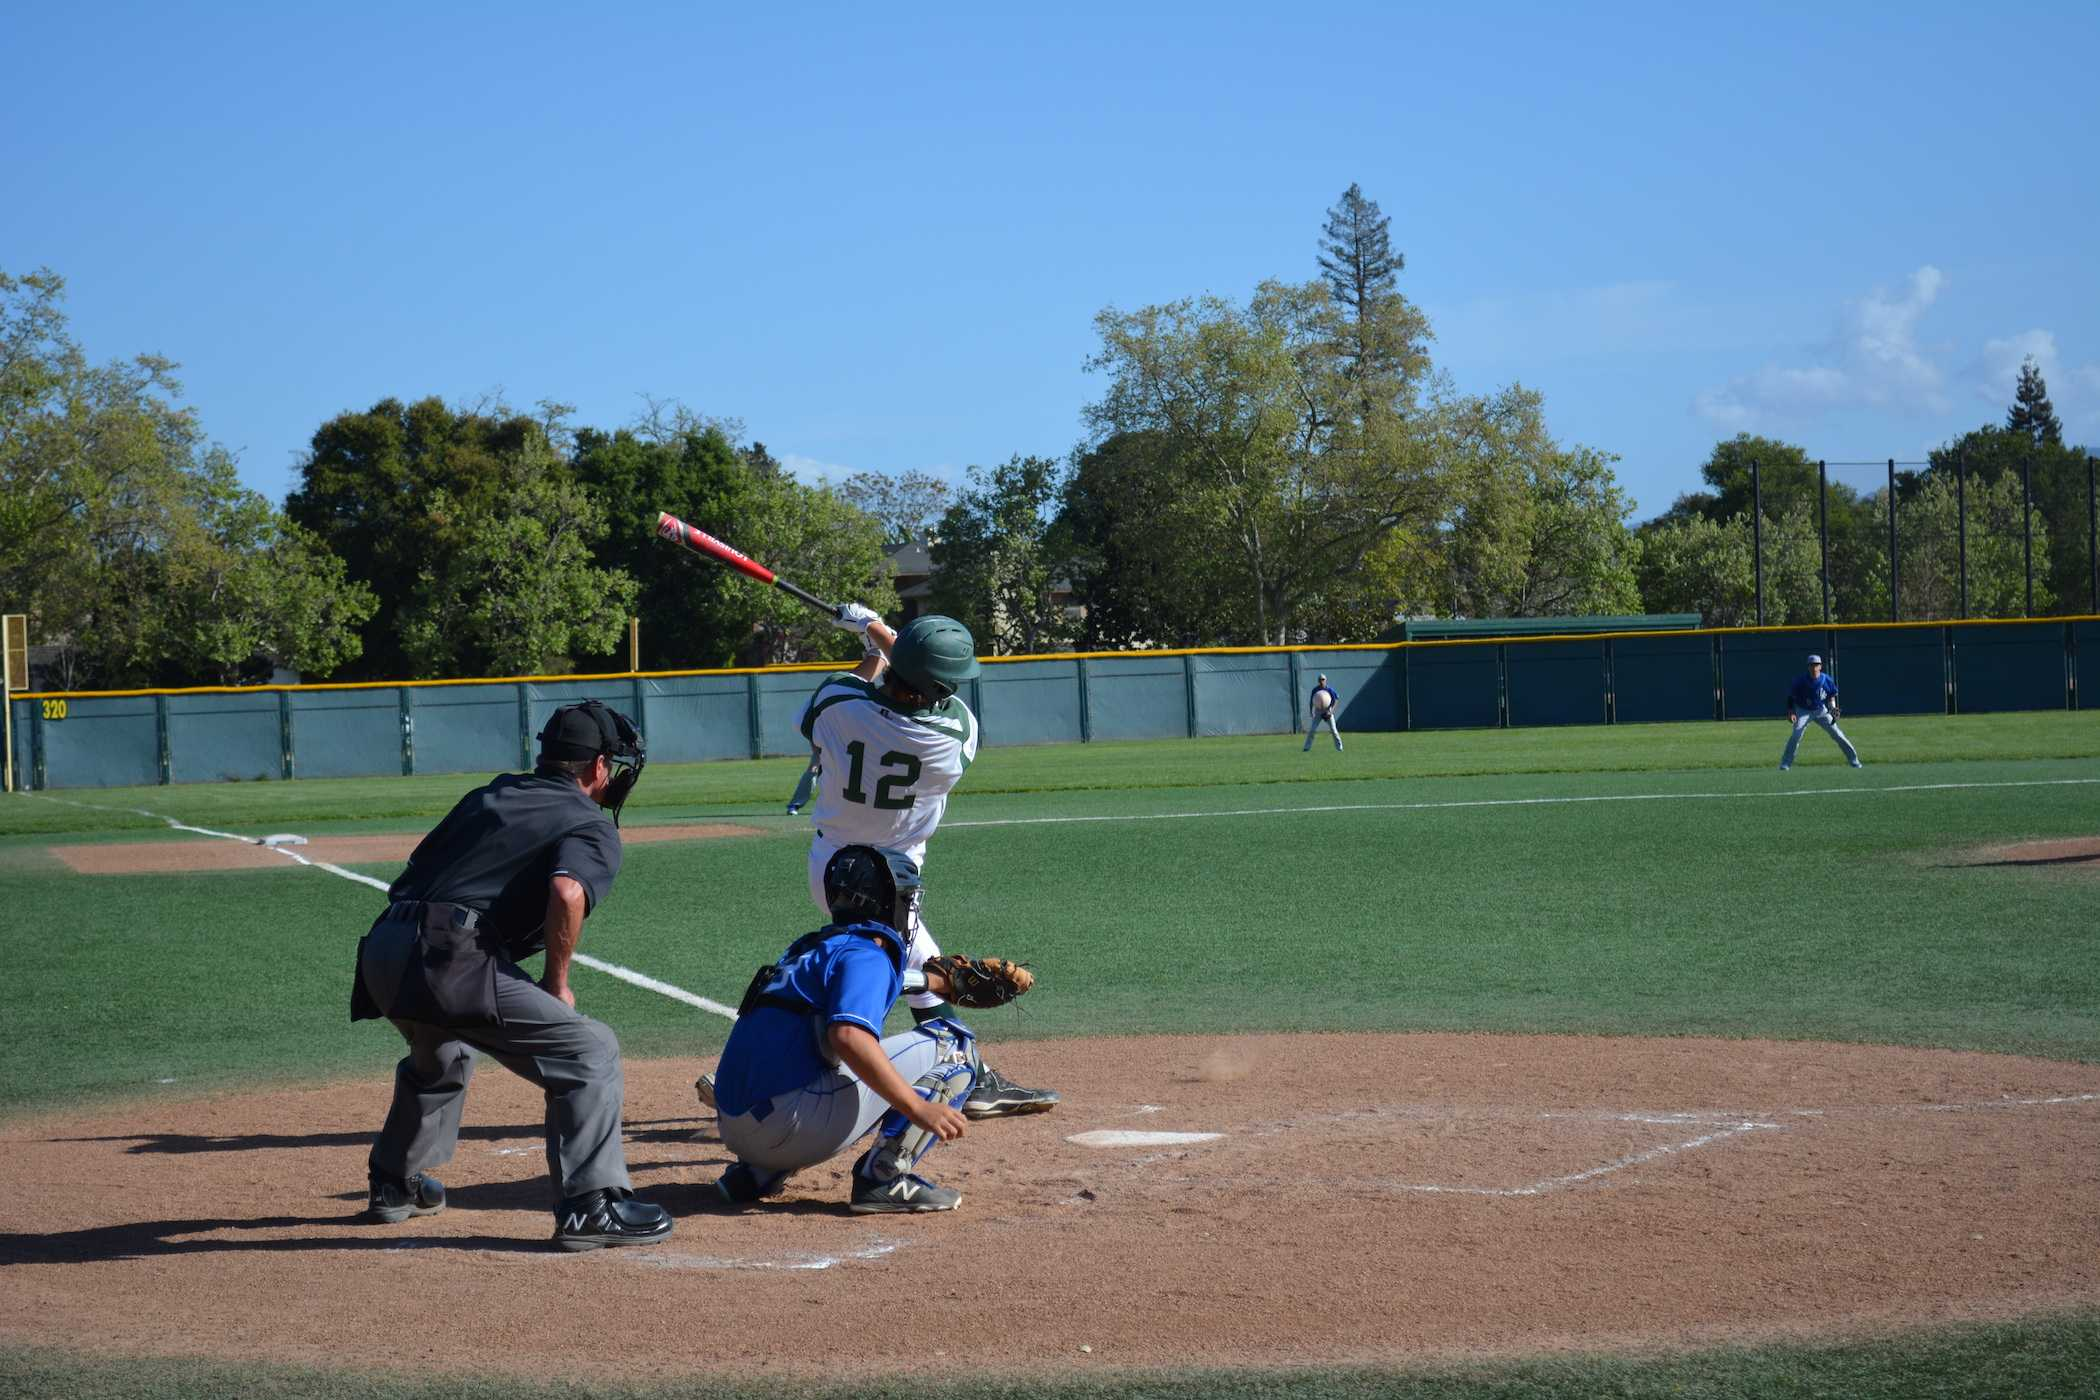 Alec Olmstead ('16) takes a swing in todays matchup against Los Altos High School.